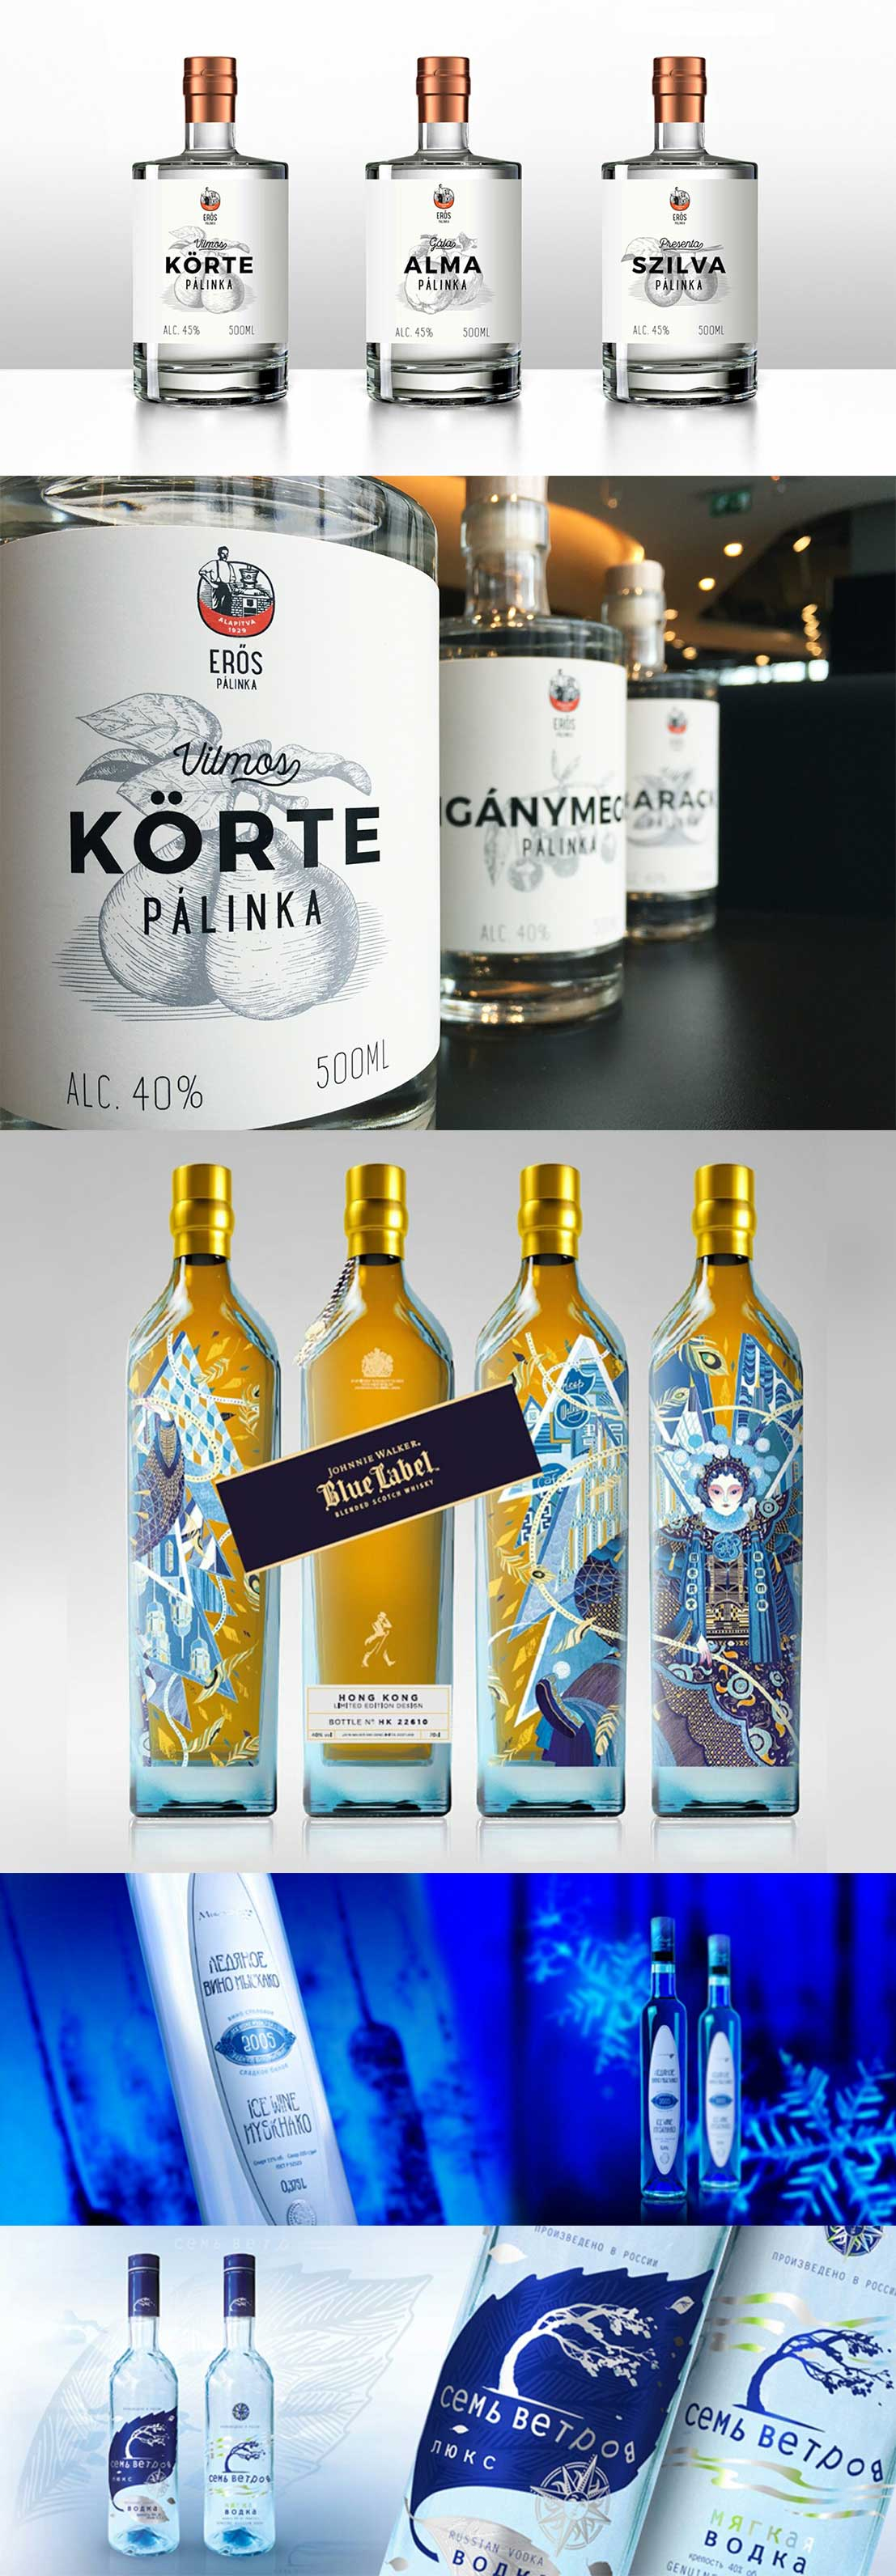 La fabricación de botellas de vodka